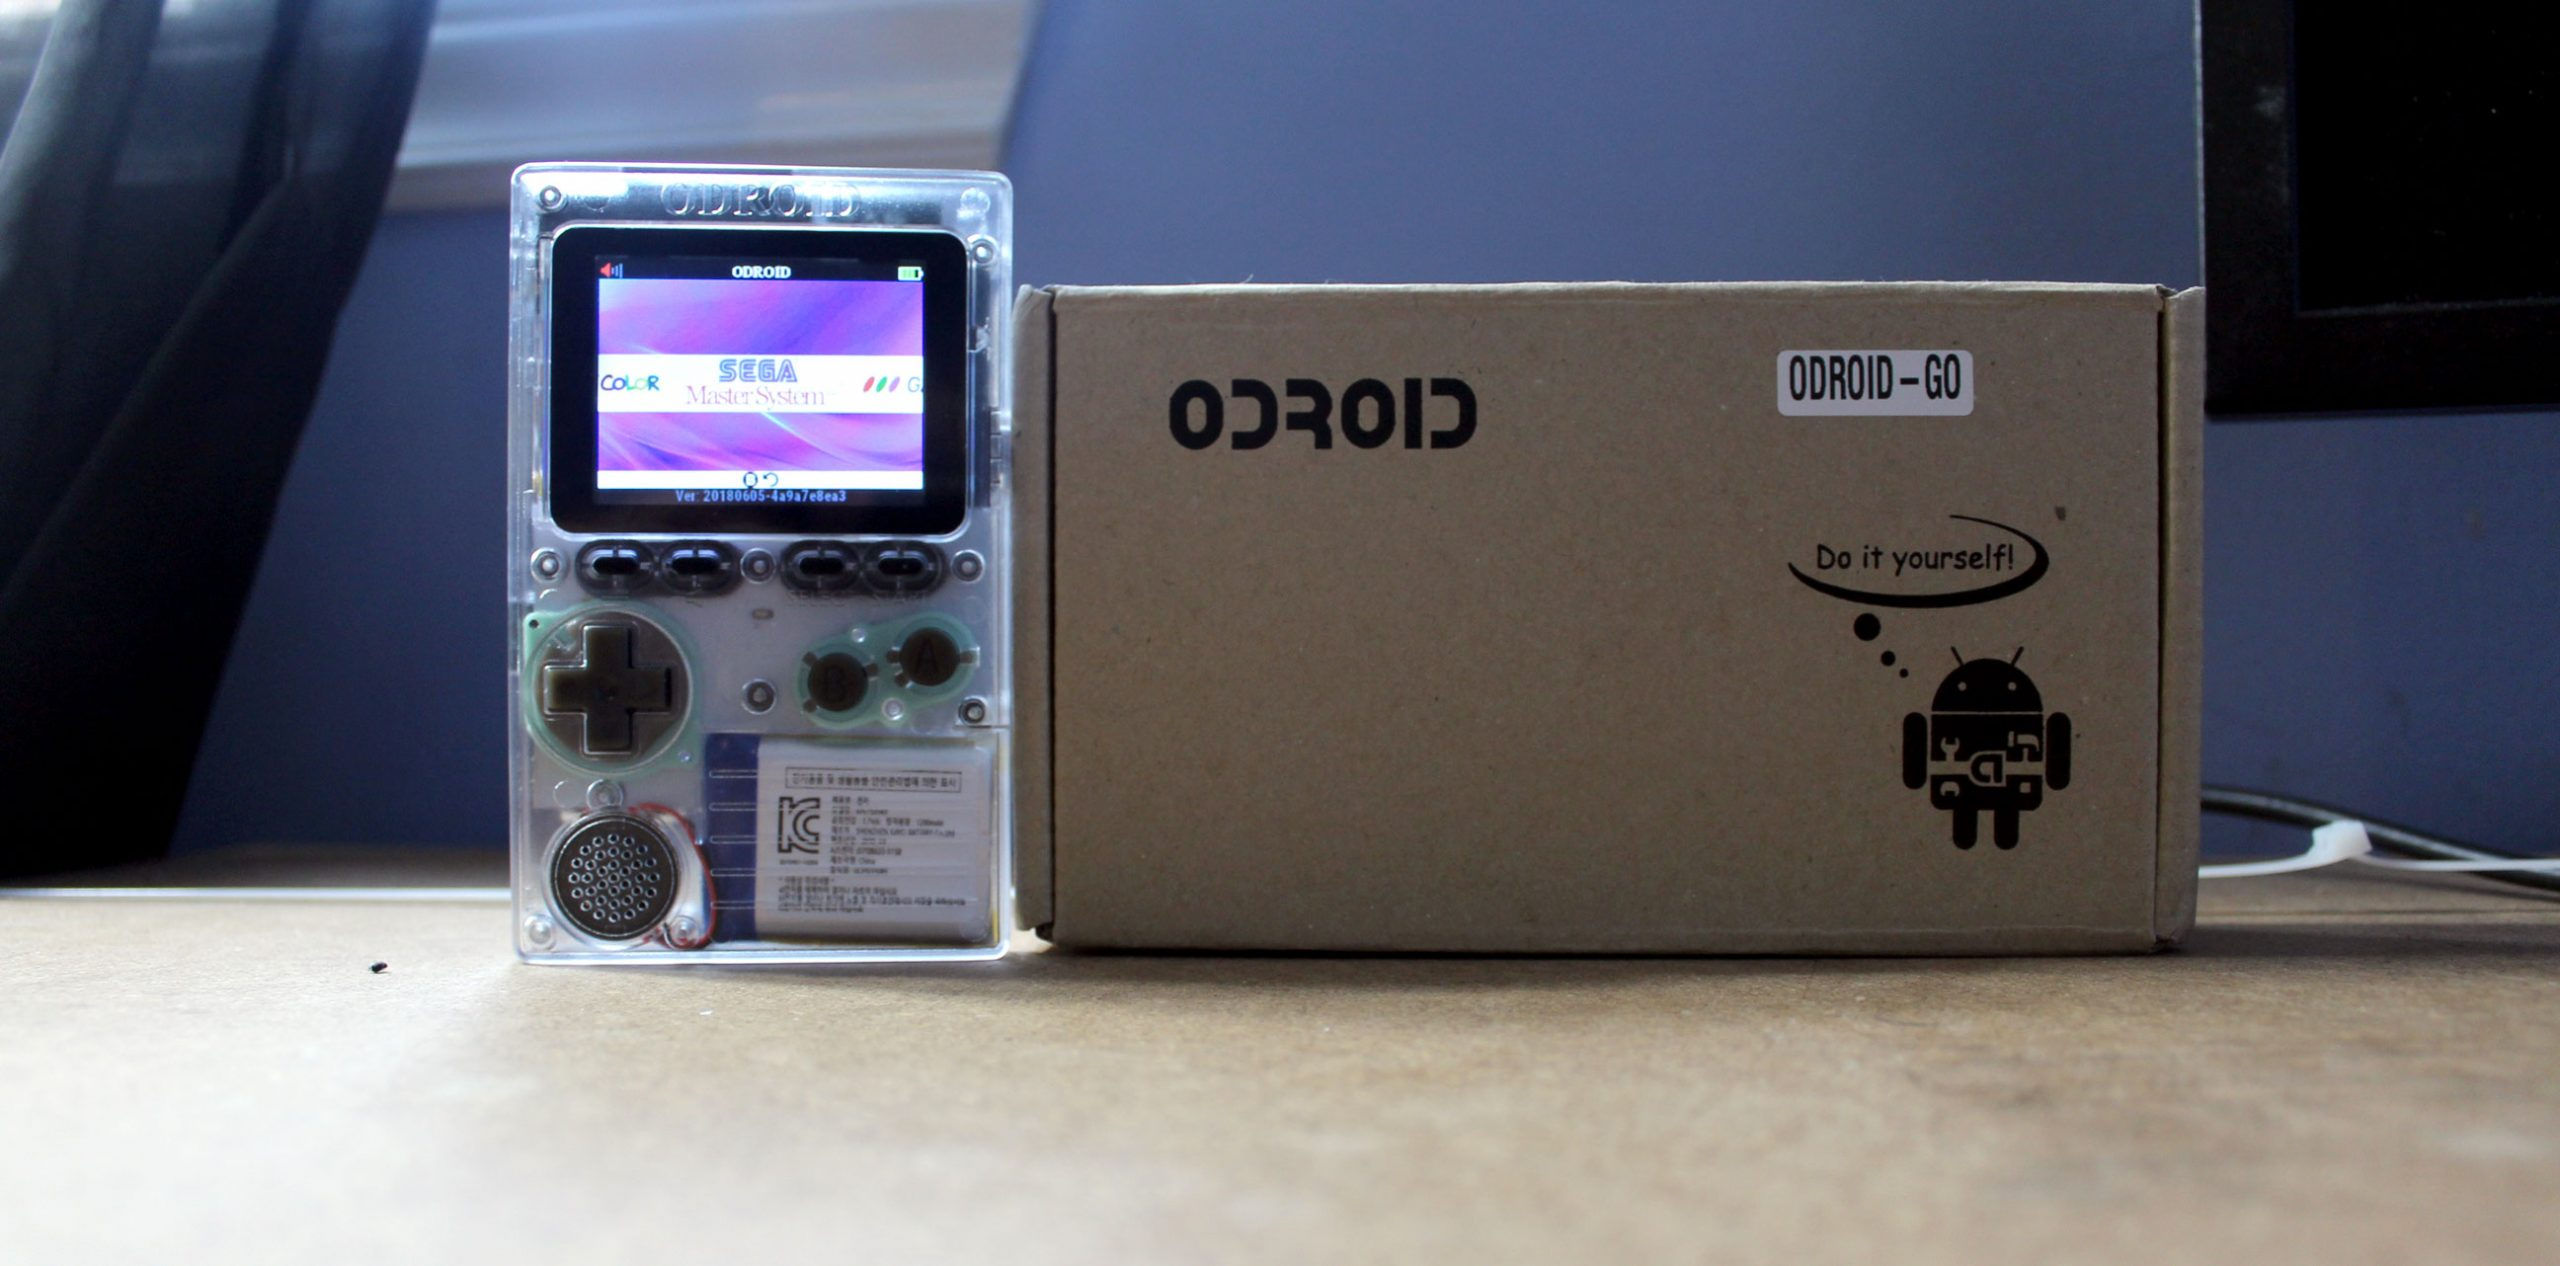 ODroid Go (Video) – Portable Emulator – Unboxing, Assembly, Configuration, Gameplay with Video!